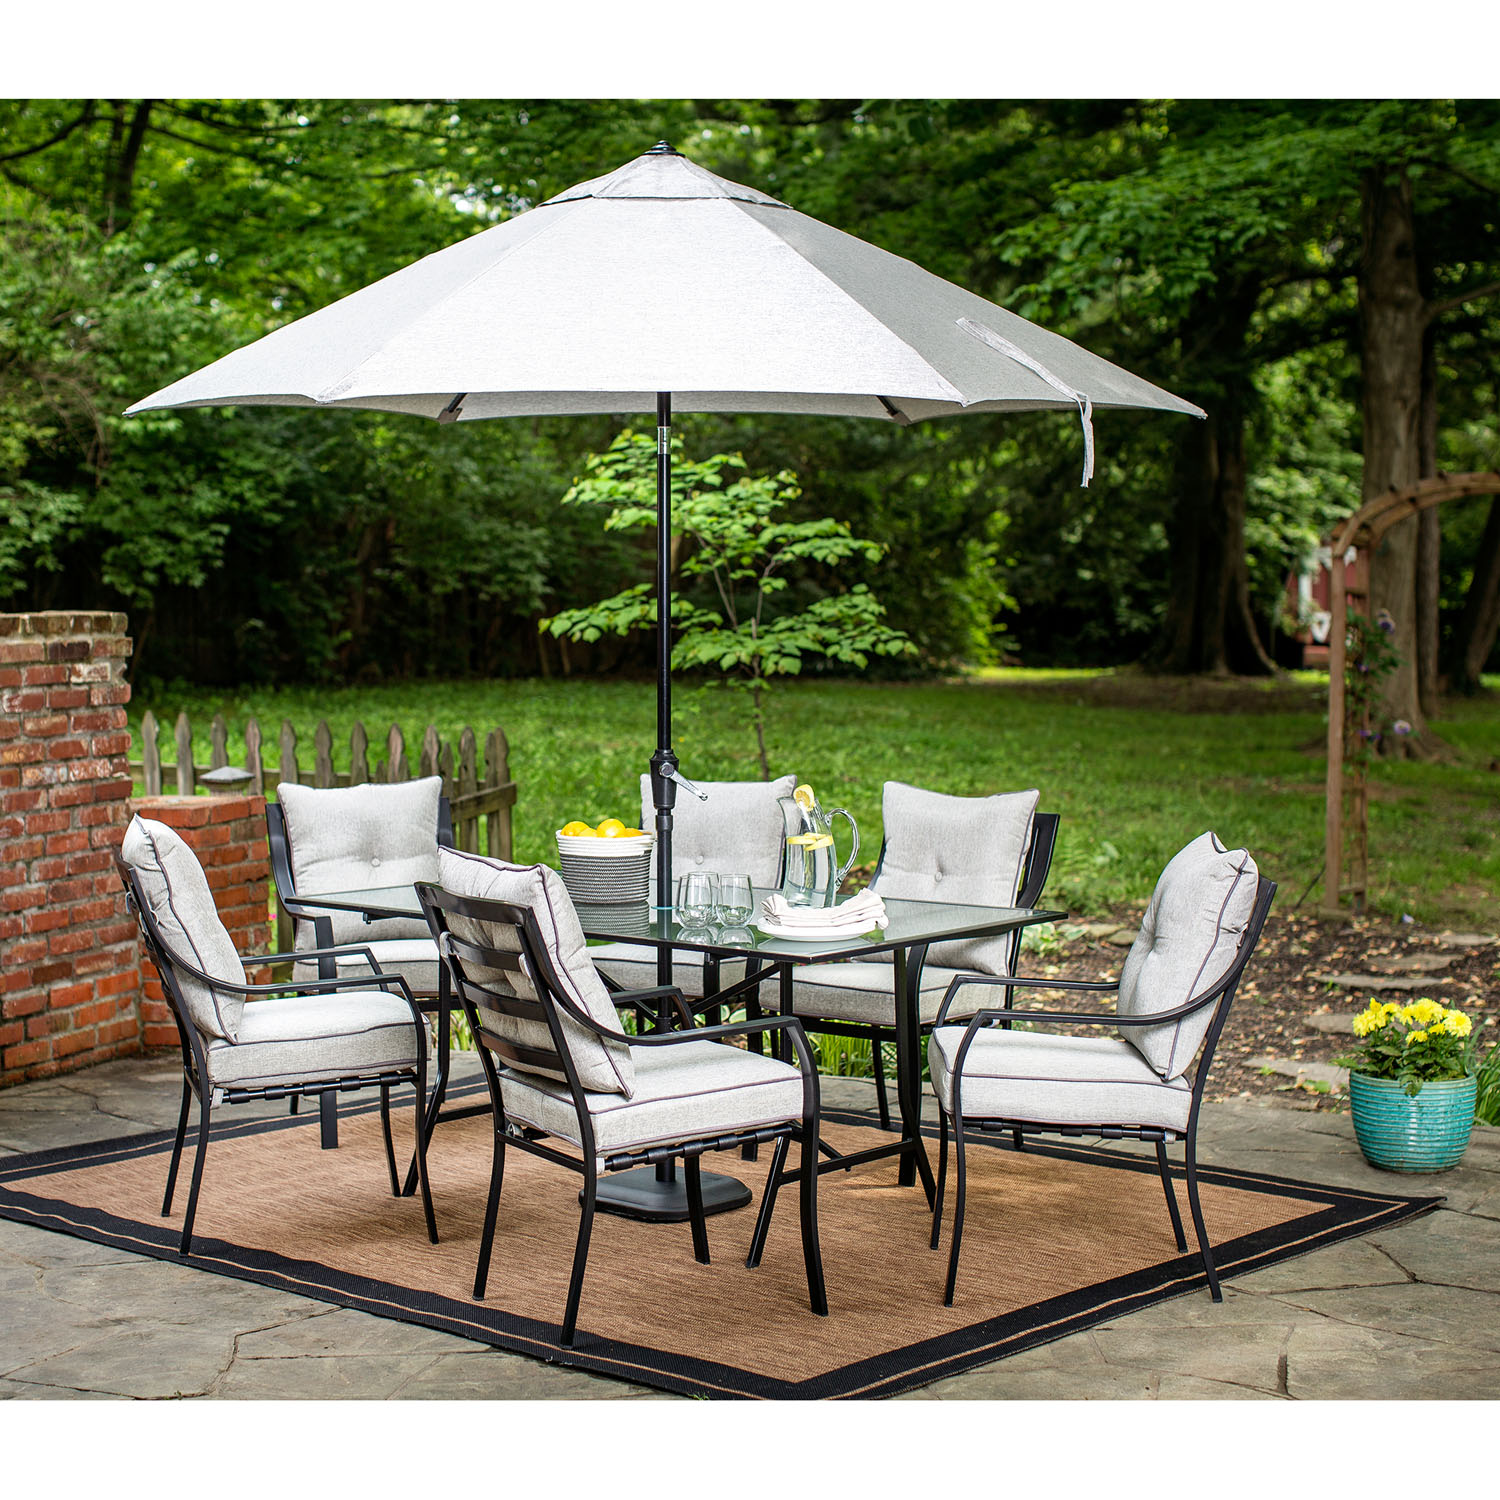 Hanover Lavallette 7-Piece Outdoor Dining Set with Table Umbrella and Stand & Hanover Lavallette 7-Piece Outdoor Dining Set with Table Umbrella ...